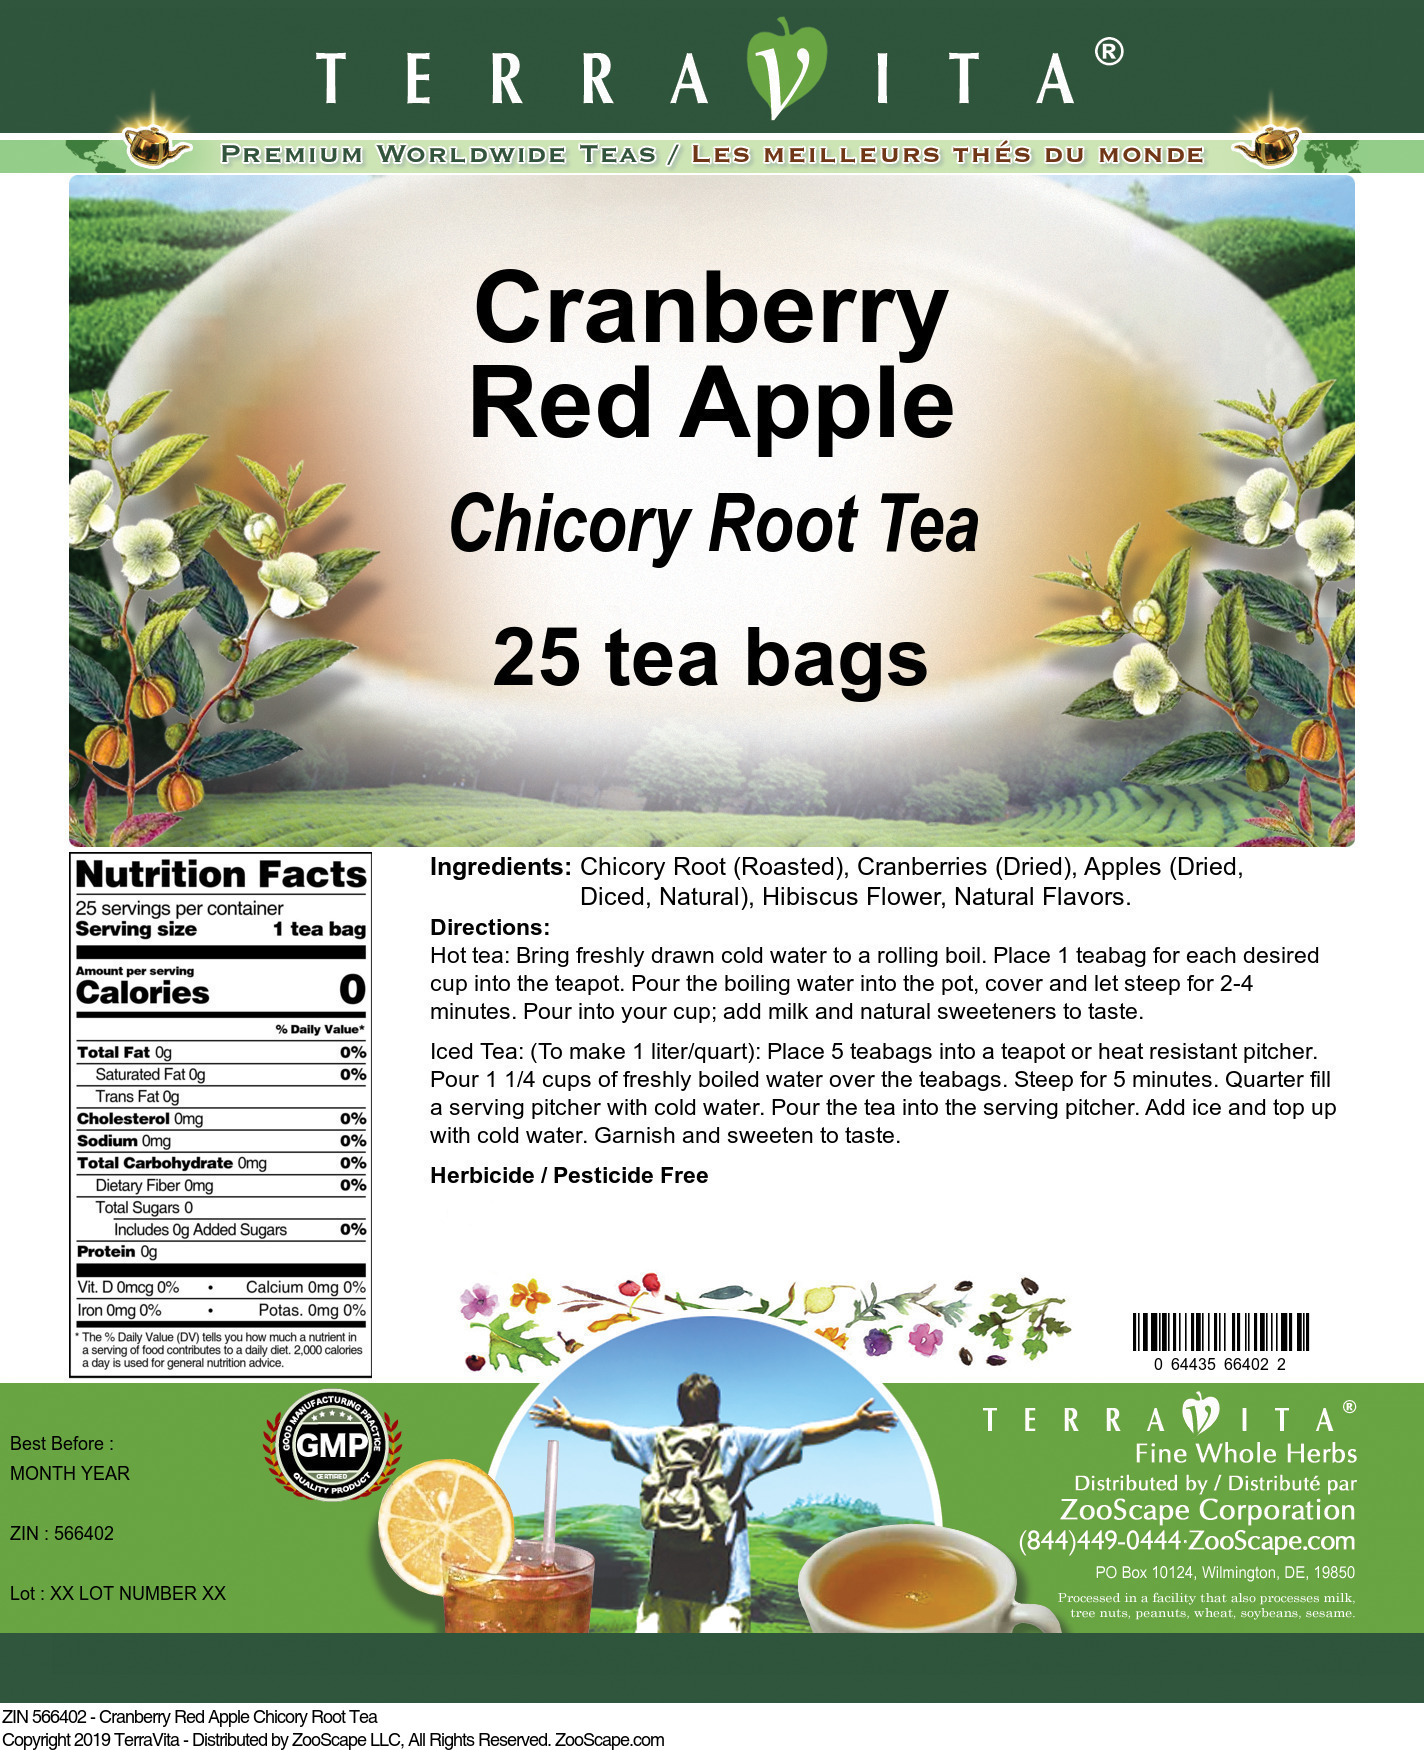 Cranberry Red Apple Chicory Root Tea